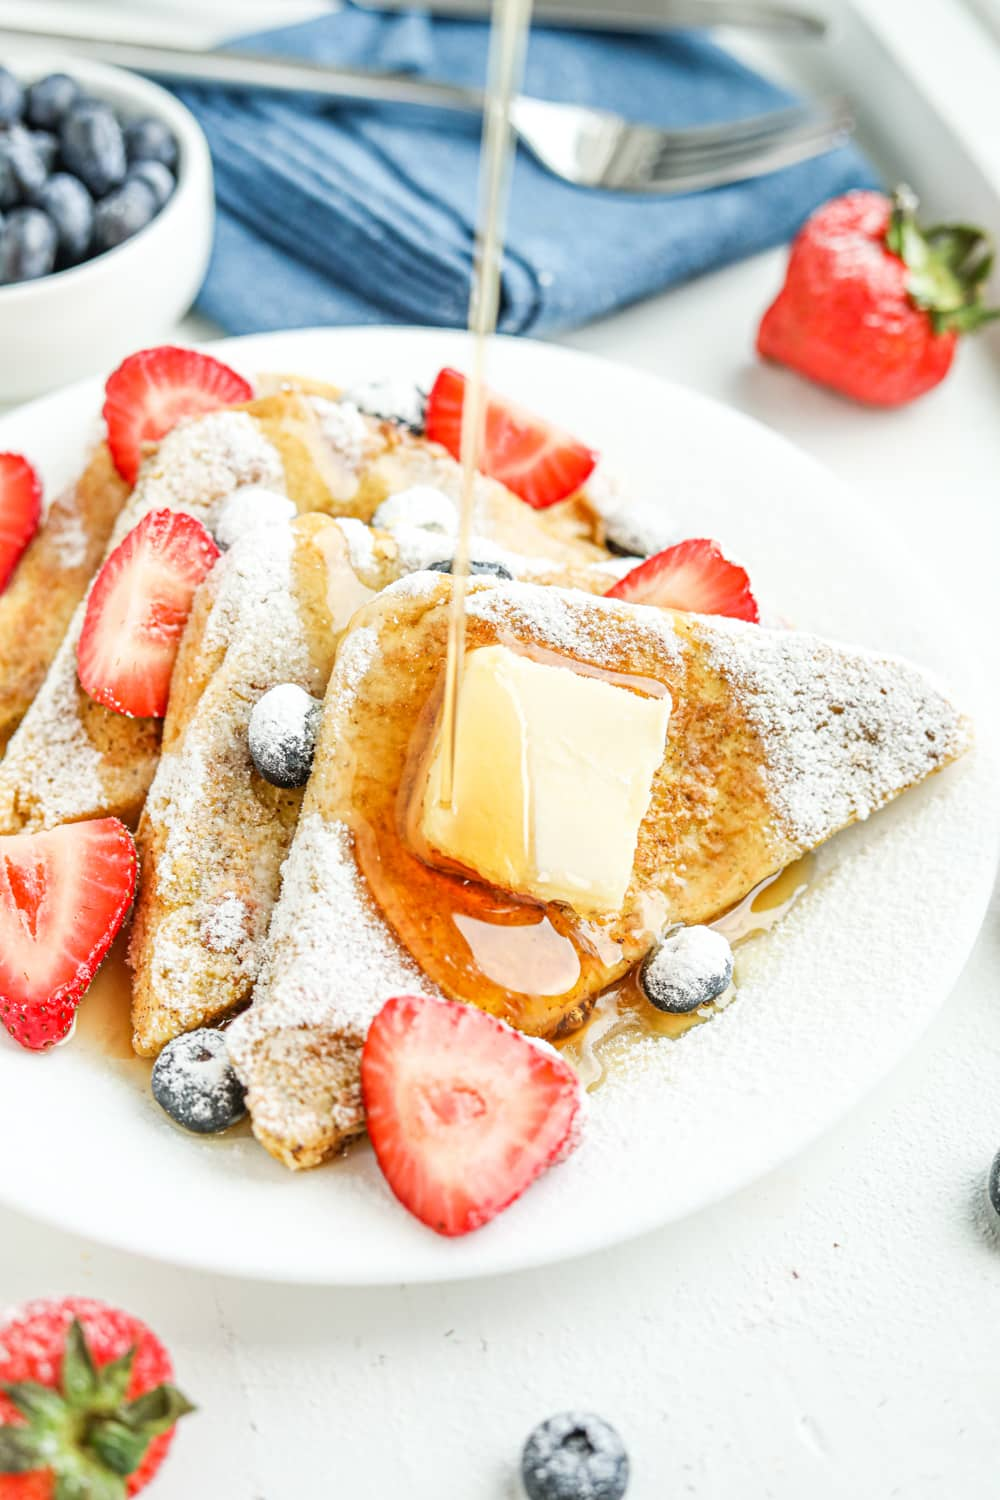 Syrup being drizzled on French toast and berries.